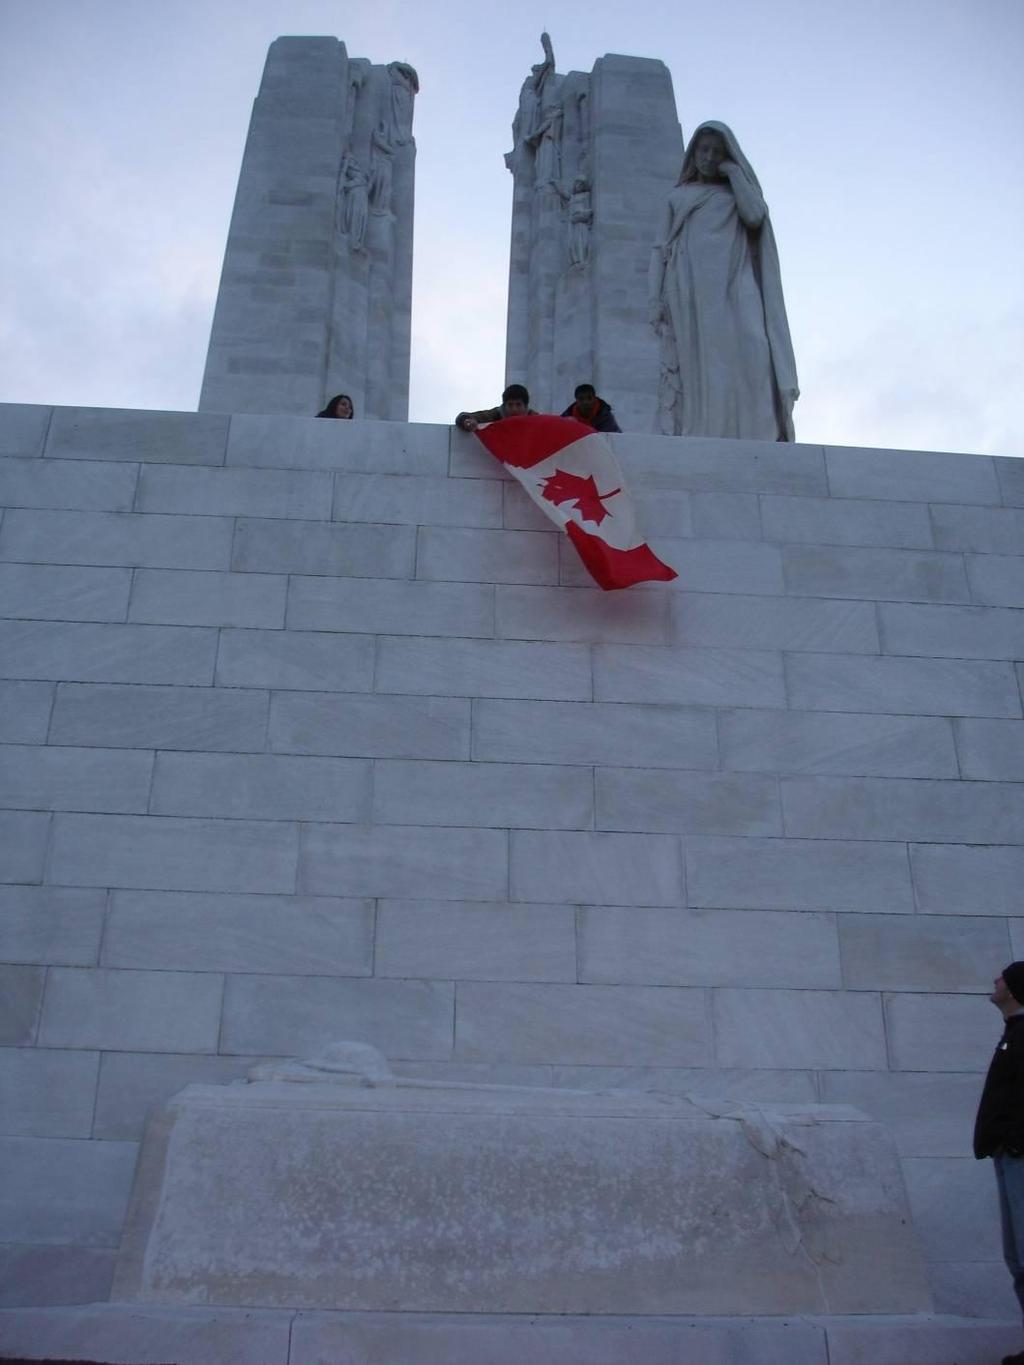 The Mourning Woman looking down on the casket represents Canada